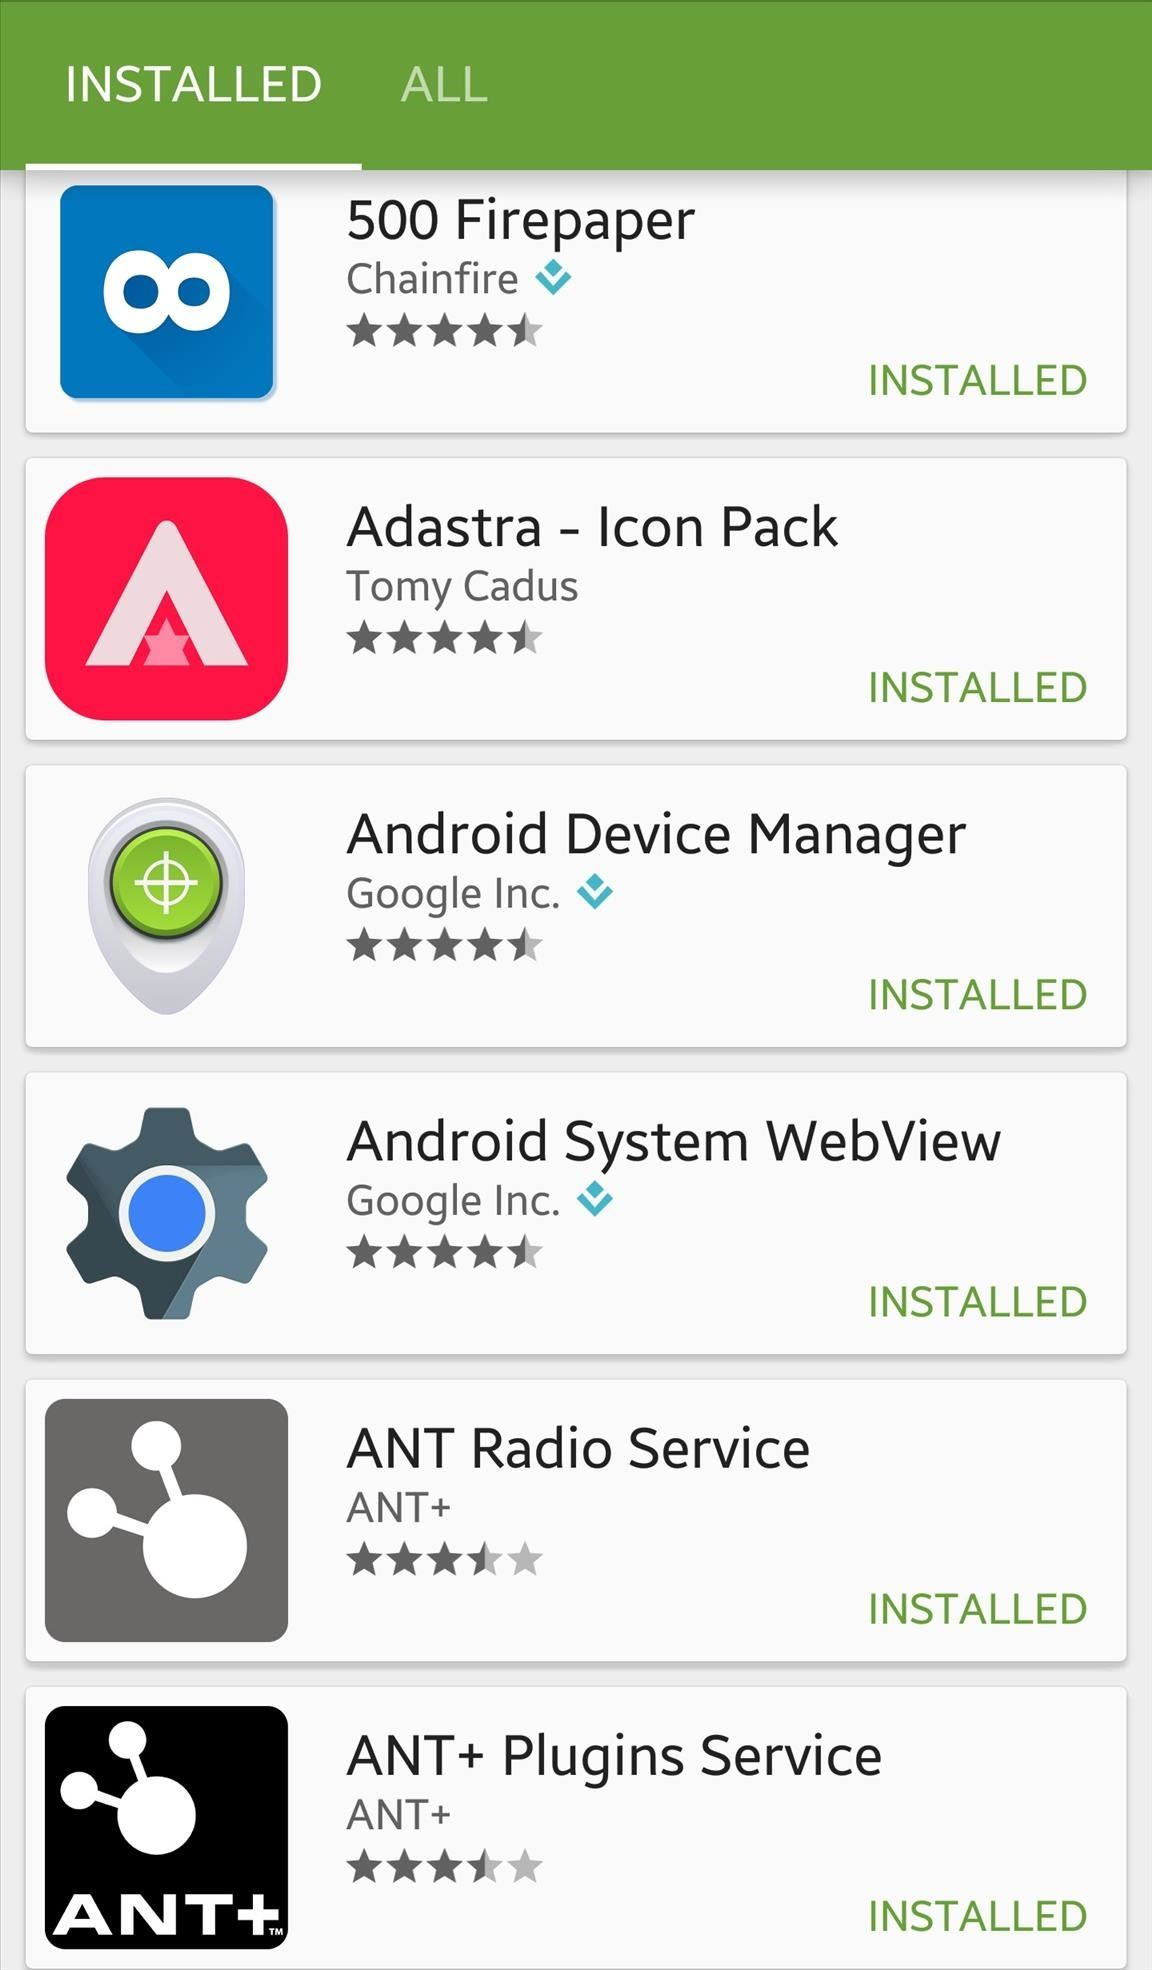 The Ultimate Guide to Deleting Apps & Bloatware on Android